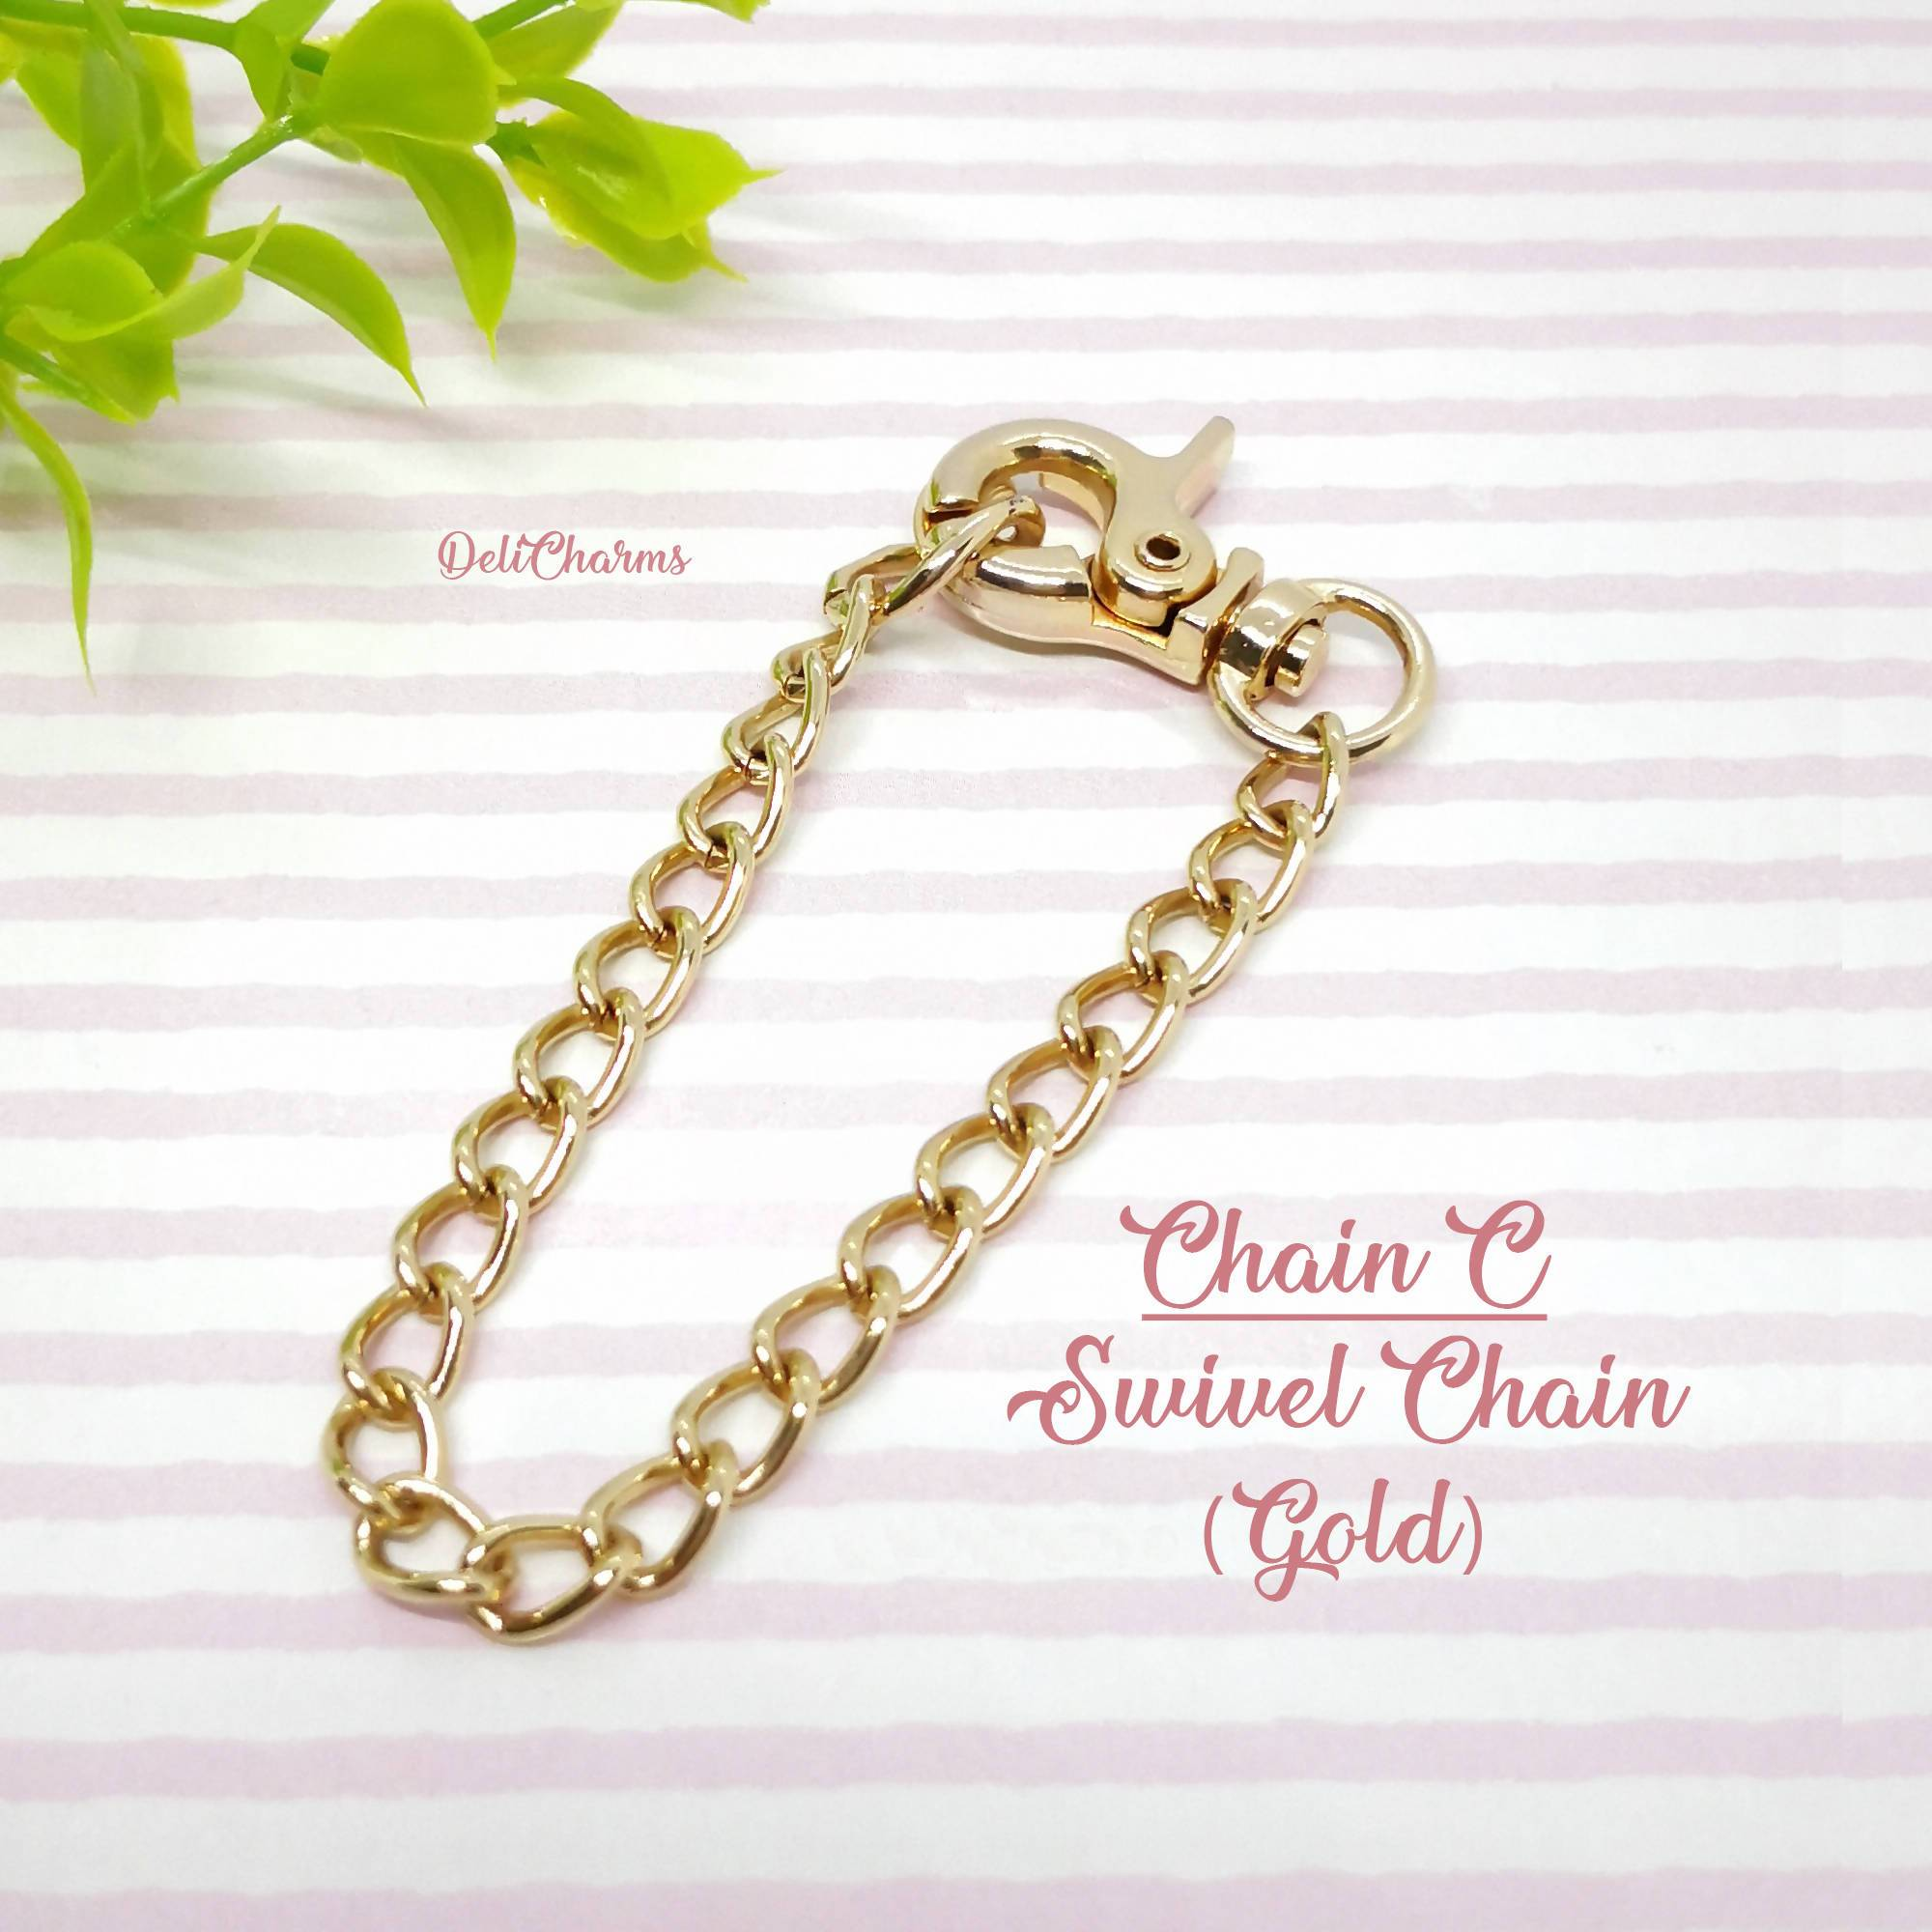 Swivel Chains for Charms - Keychains - Deli Charms - Naiise